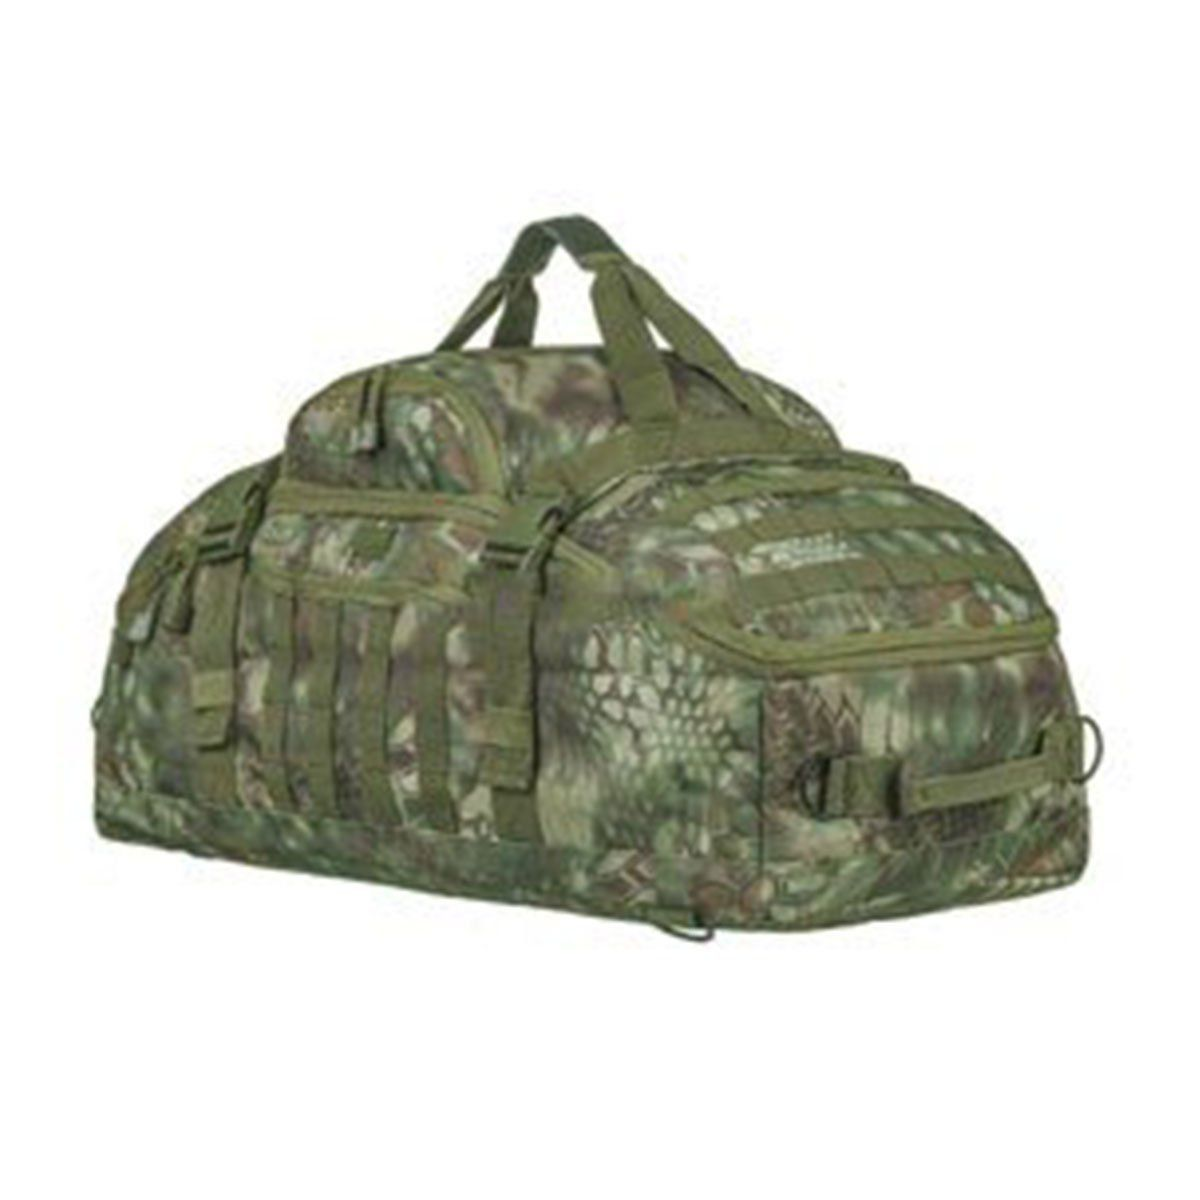 Mala Expedition Camuflado Kryptek Mandrake